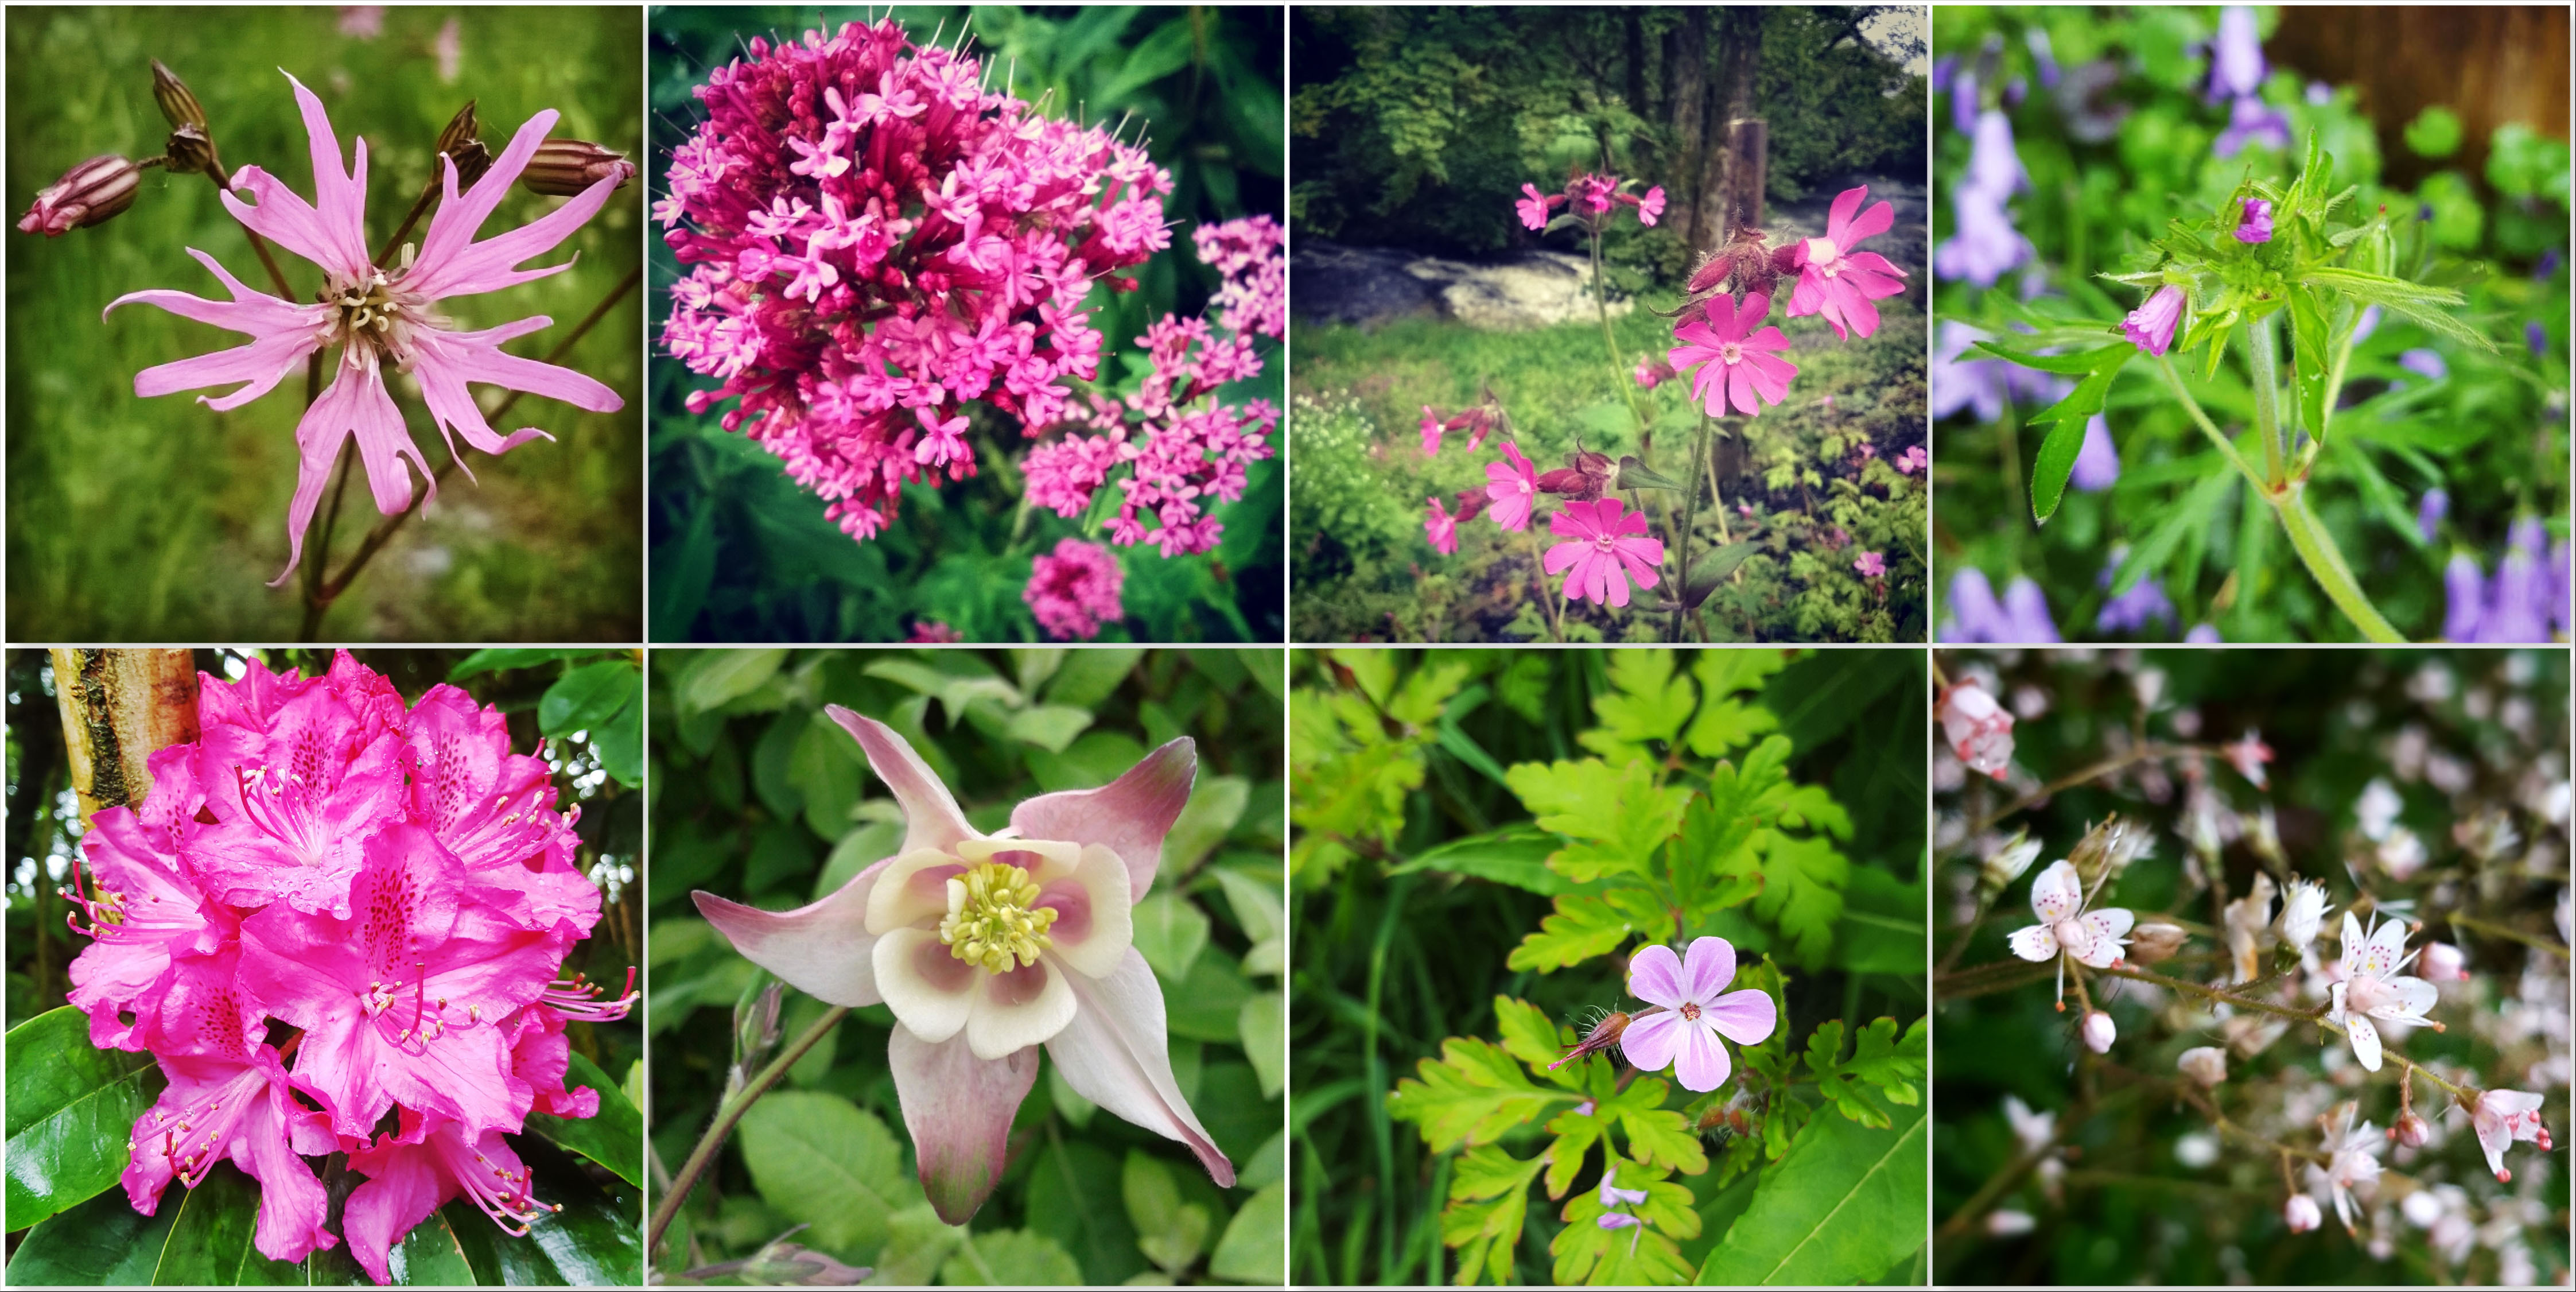 Ragged Robin - Red Valerian - Red Campion - Cranesbill - Rhododendron - Aquilegia - Herb Robert - London's Pride